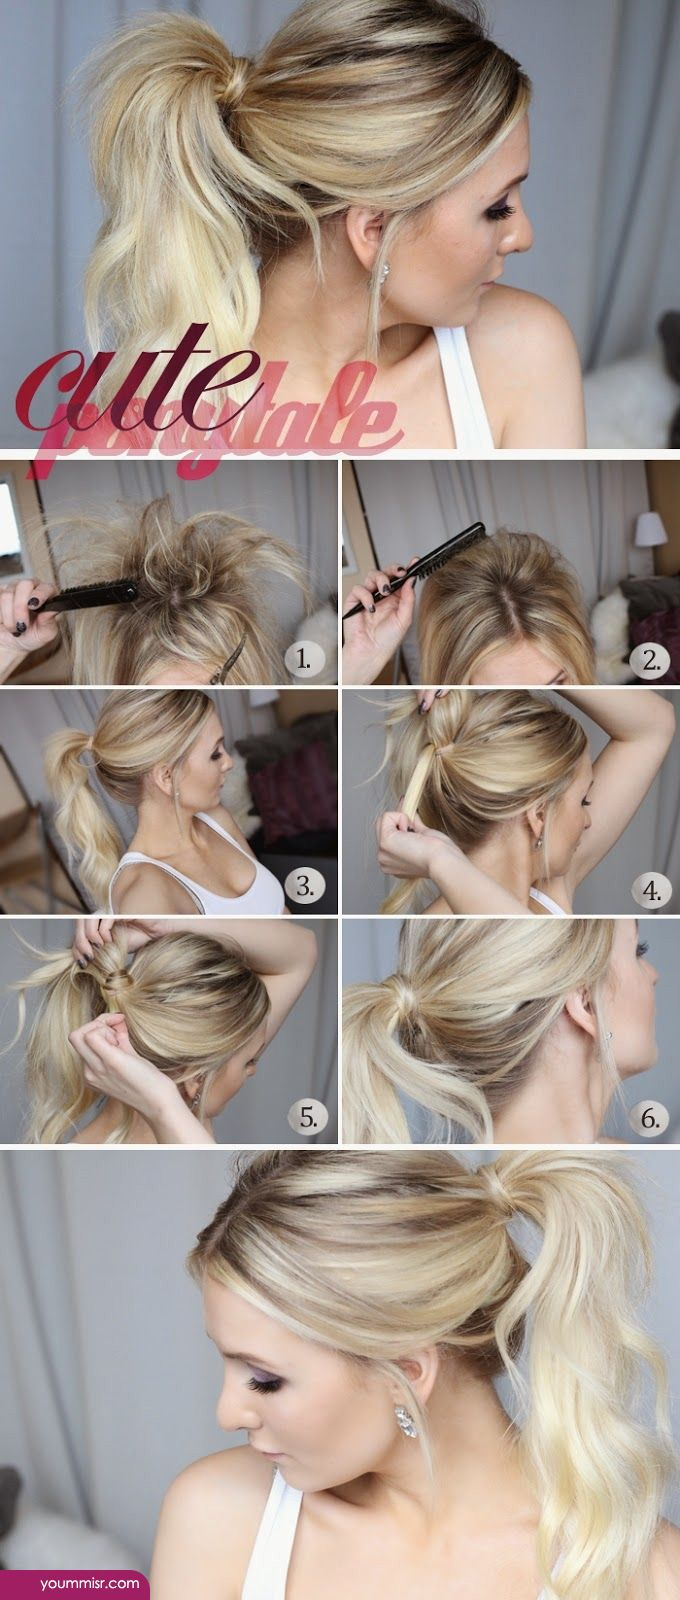 Pin by emma on messy hair in pinterest hair styles hair